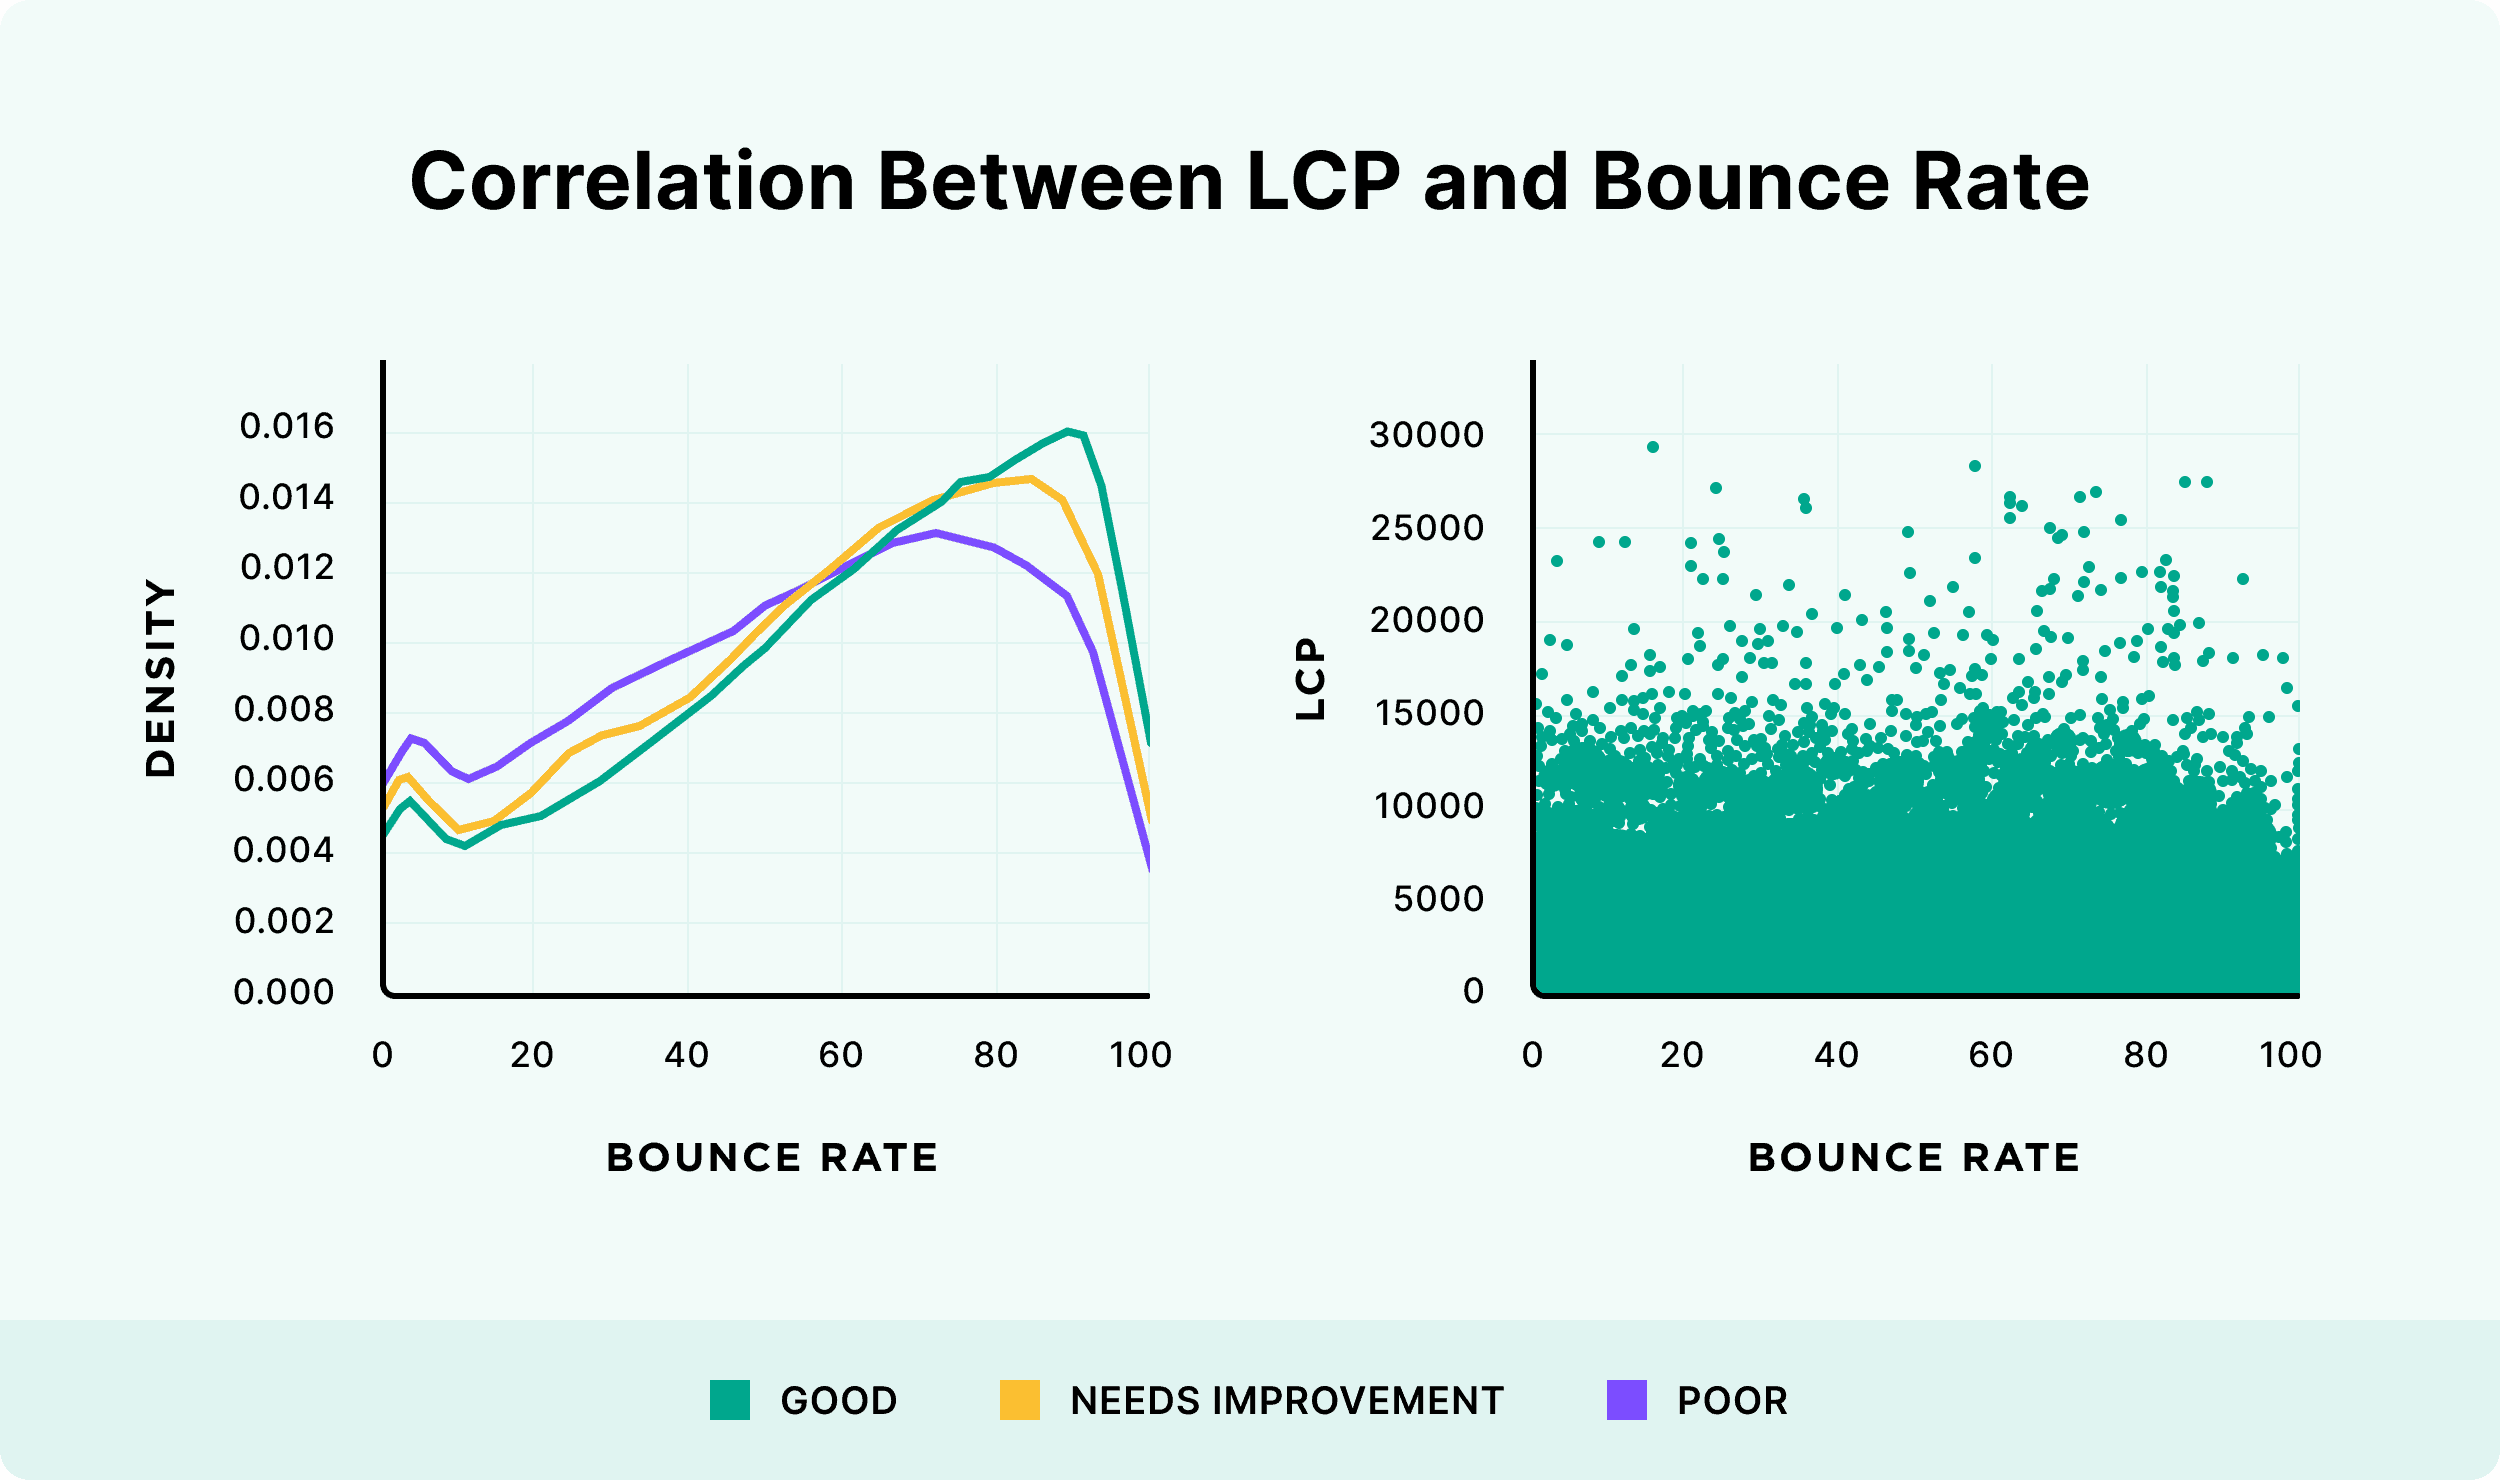 Correlation between LCP and bounce rate